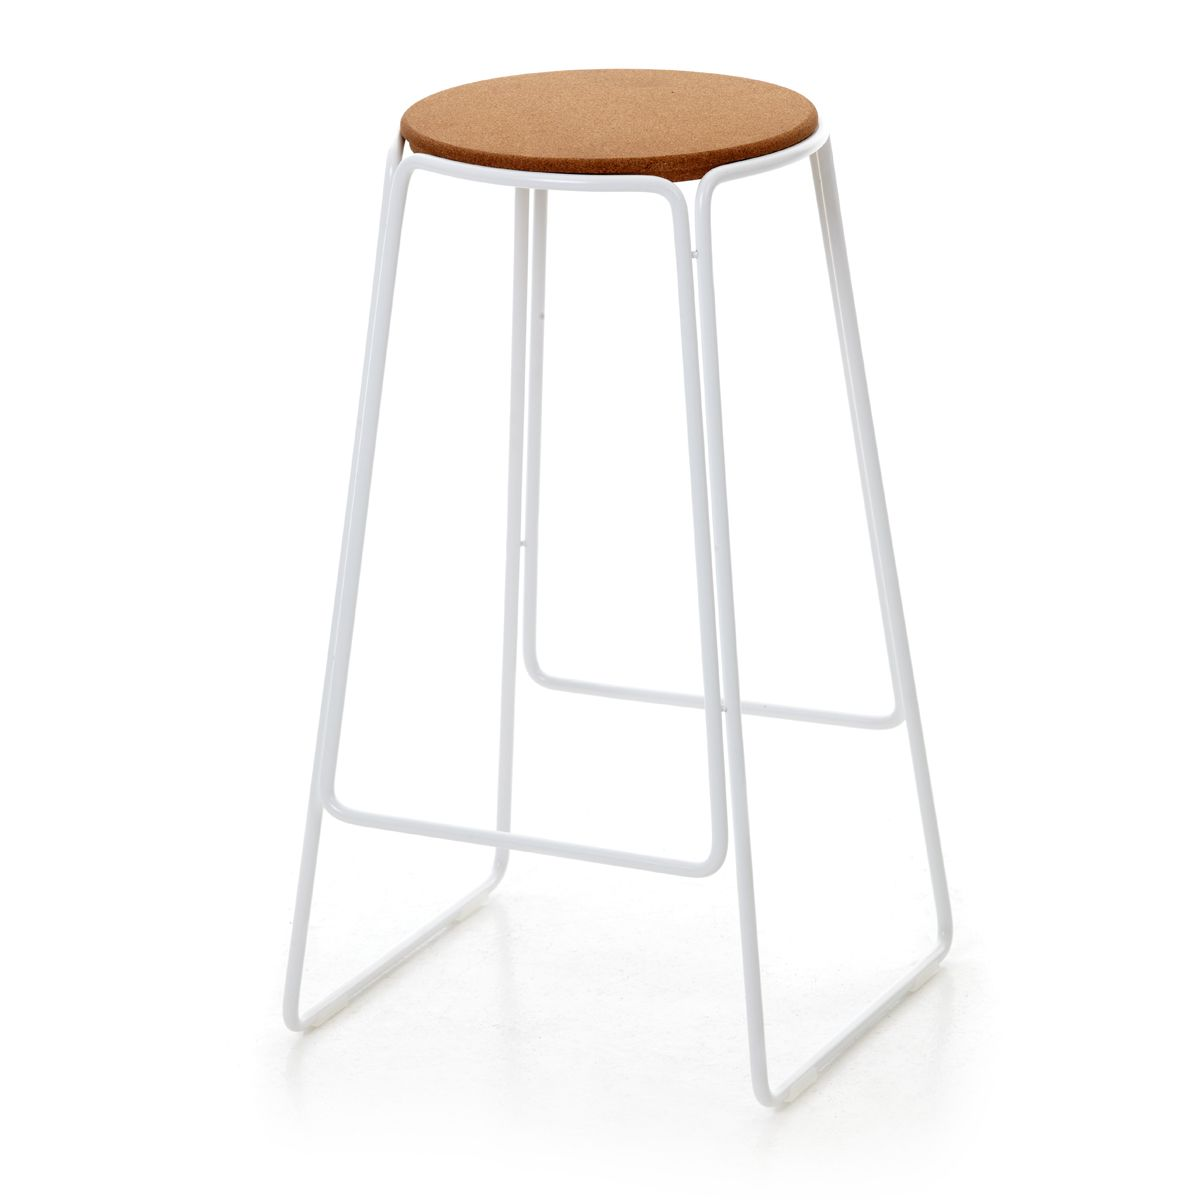 Smed stool in white by oxdenmarq exclusive to great dane for Dane design furniture